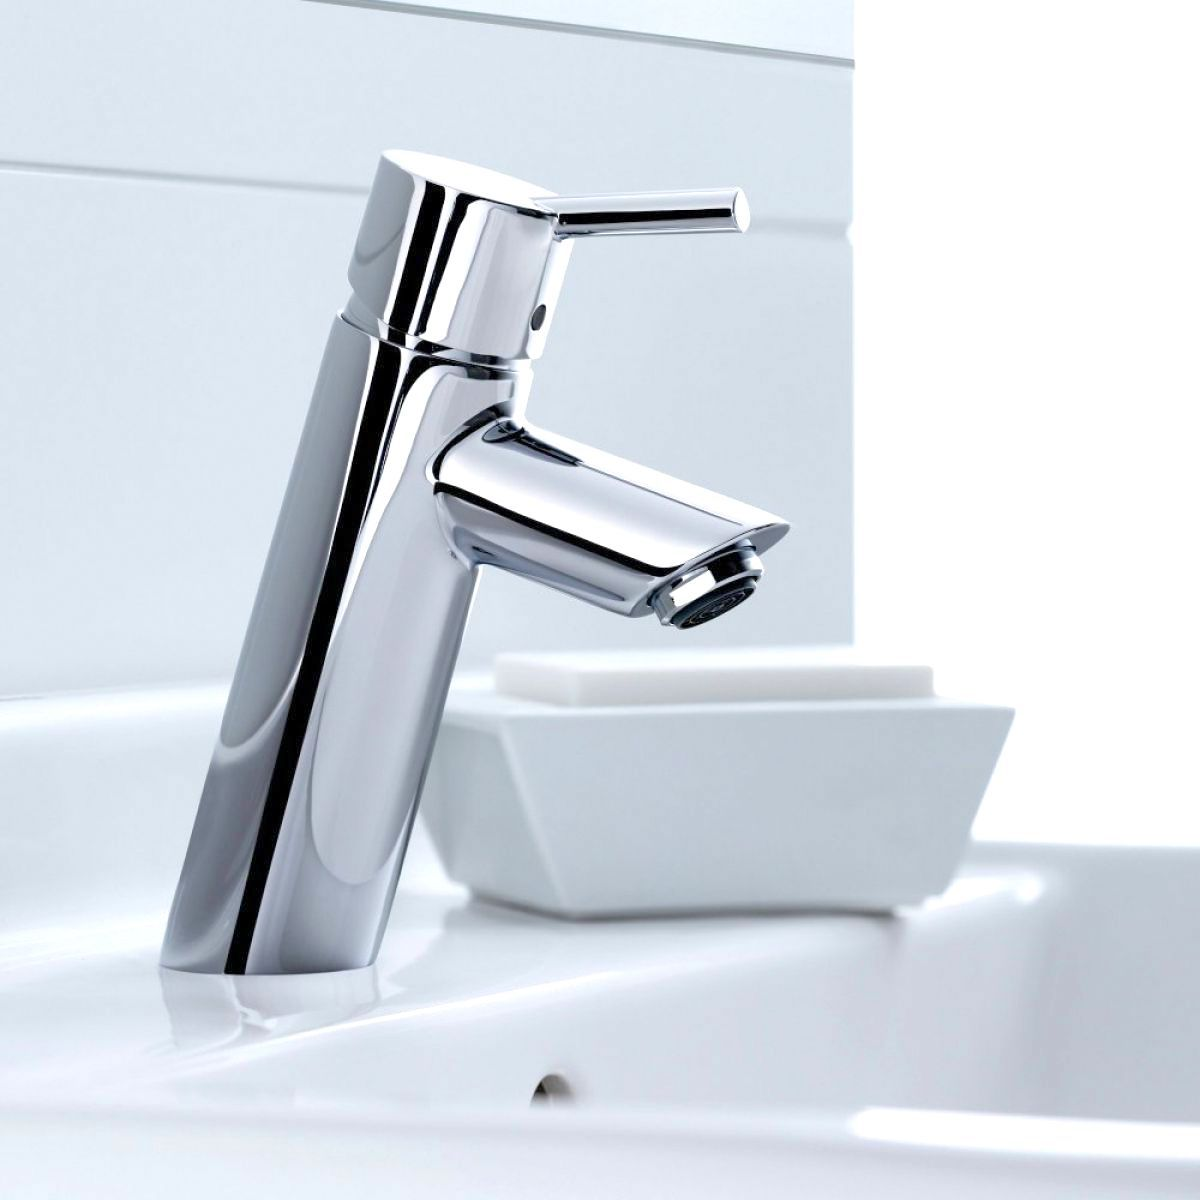 Hans Grohe Hansgrohe Talis 80 Basin Mixer Tap Uk Bathrooms